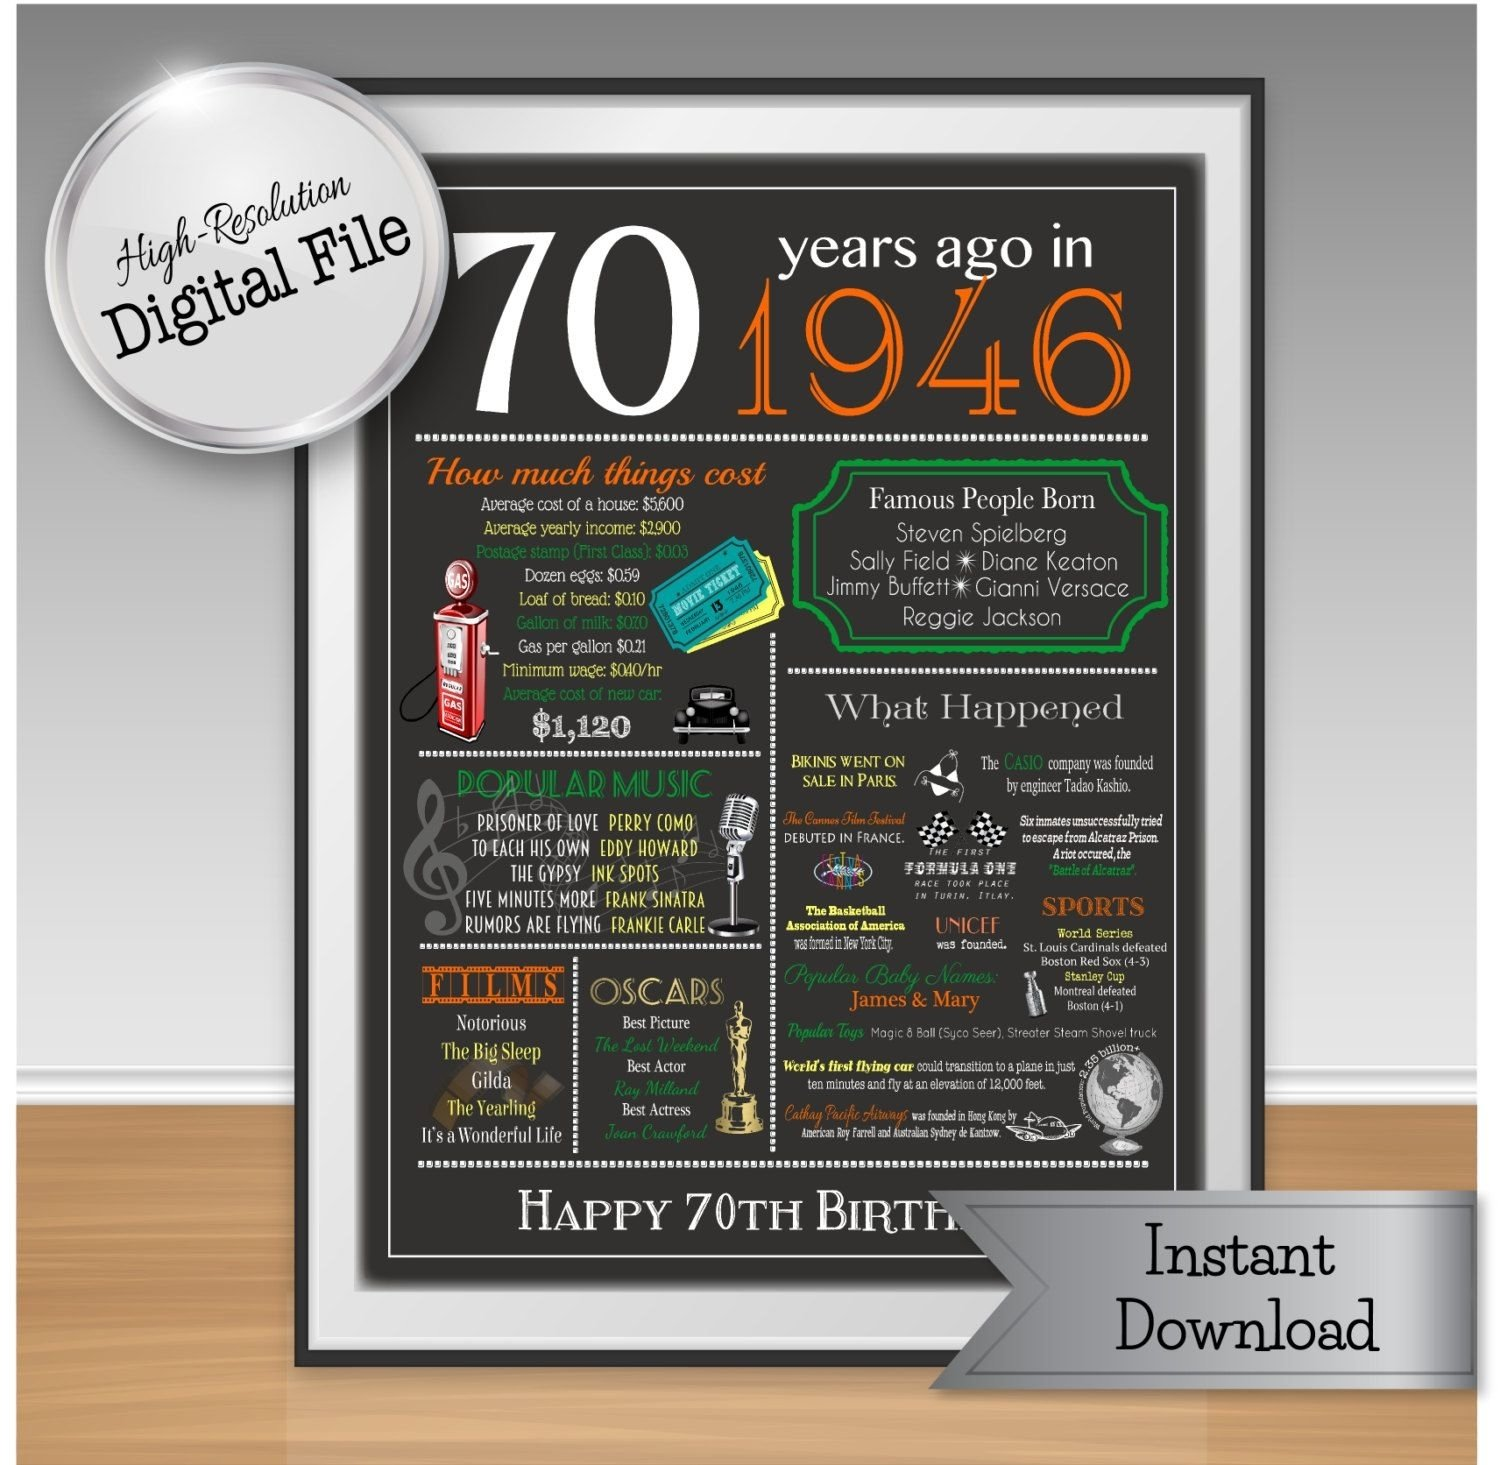 10 Most Popular 70Th Birthday Gift Ideas For Dad 70th Chalkboard Poster 70 Years Ago